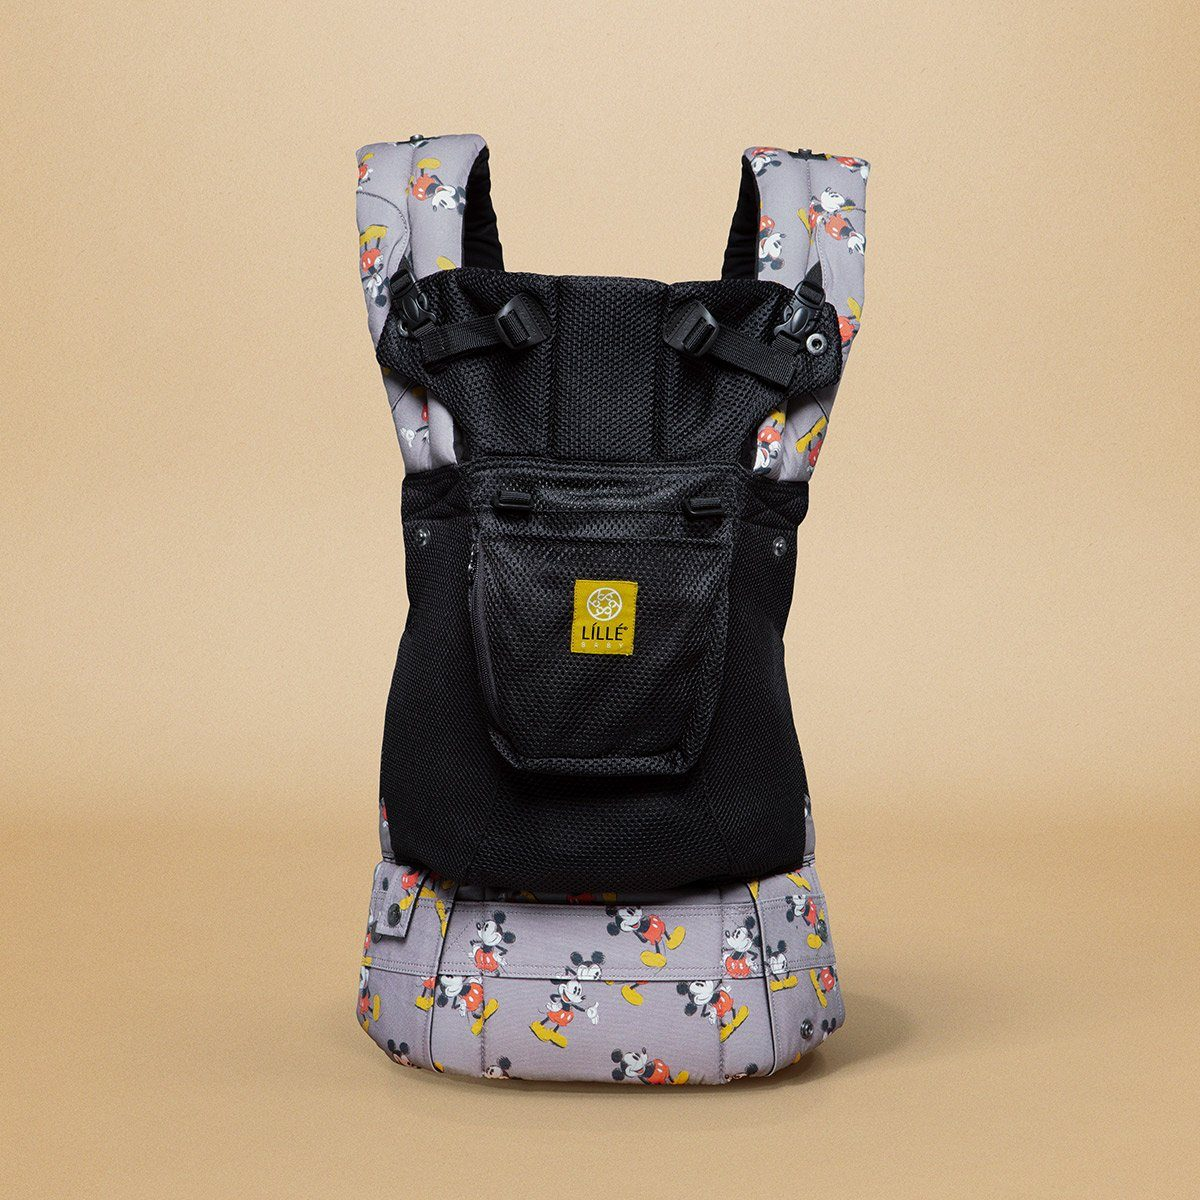 ca4f0792ffd Disney-Themed Airflow Baby Carrier – LILLEbaby